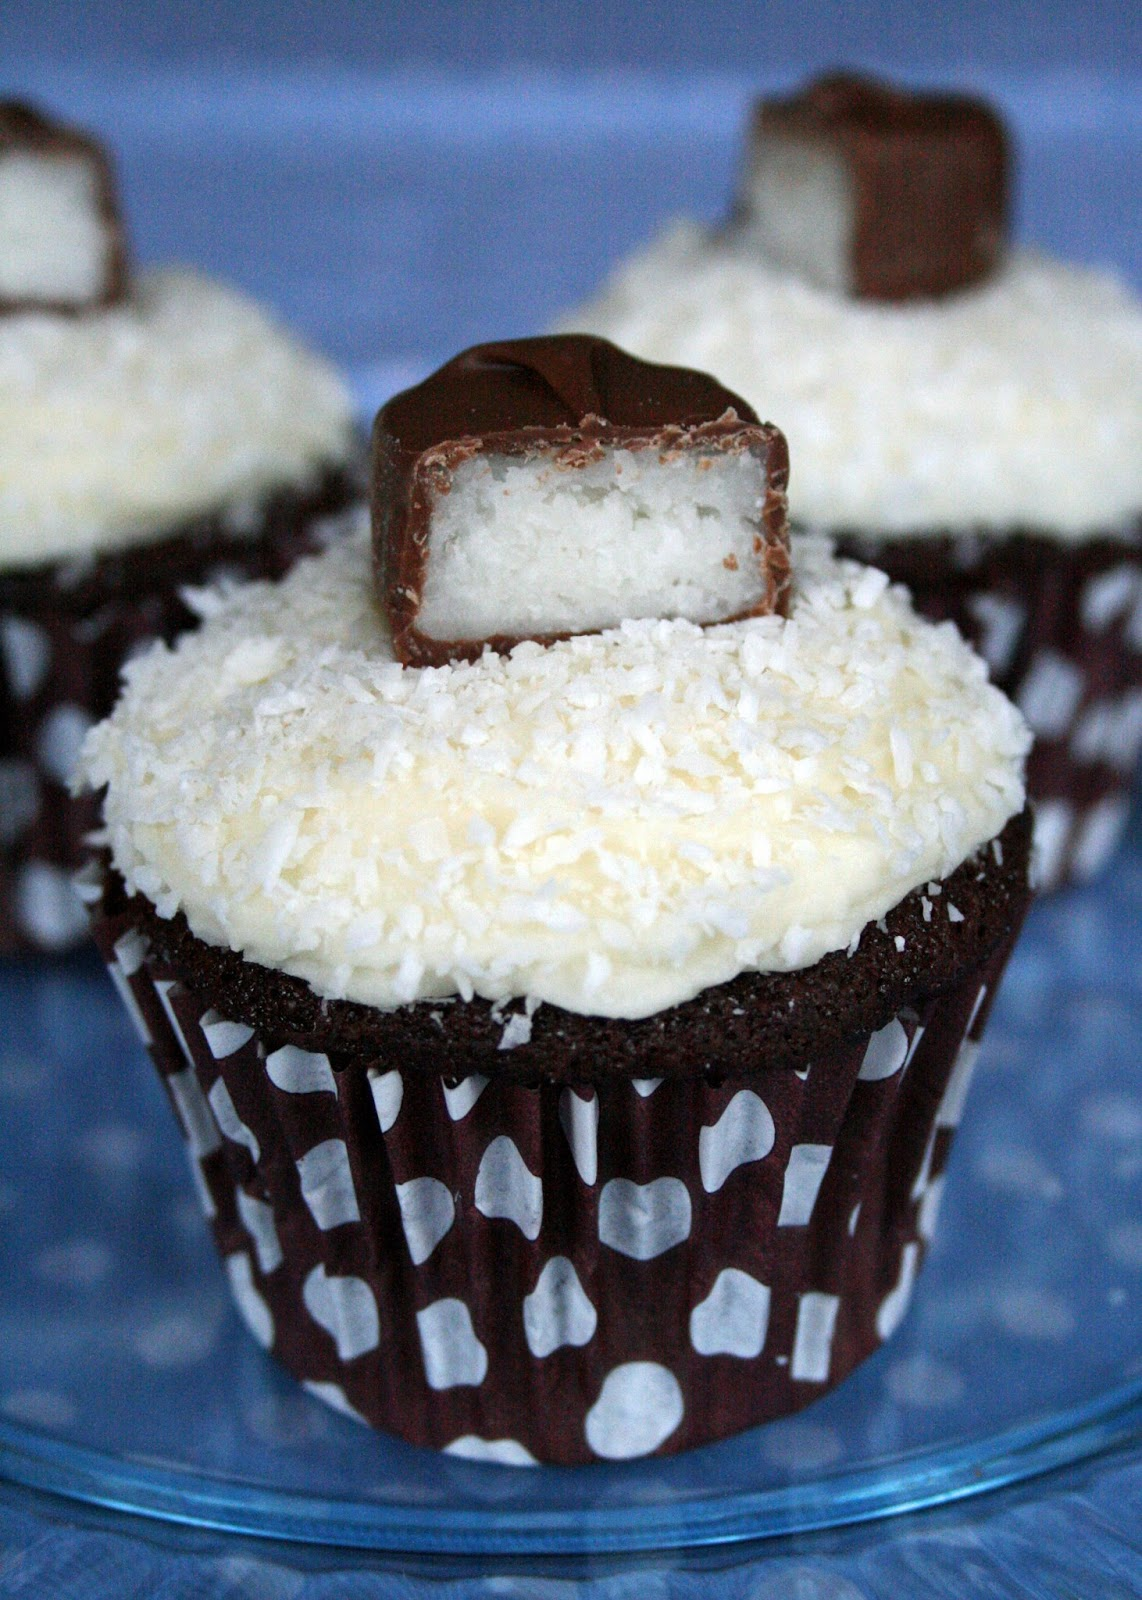 Lauralovescakes Chocolate Amp Coconut Bounty Cupcakes